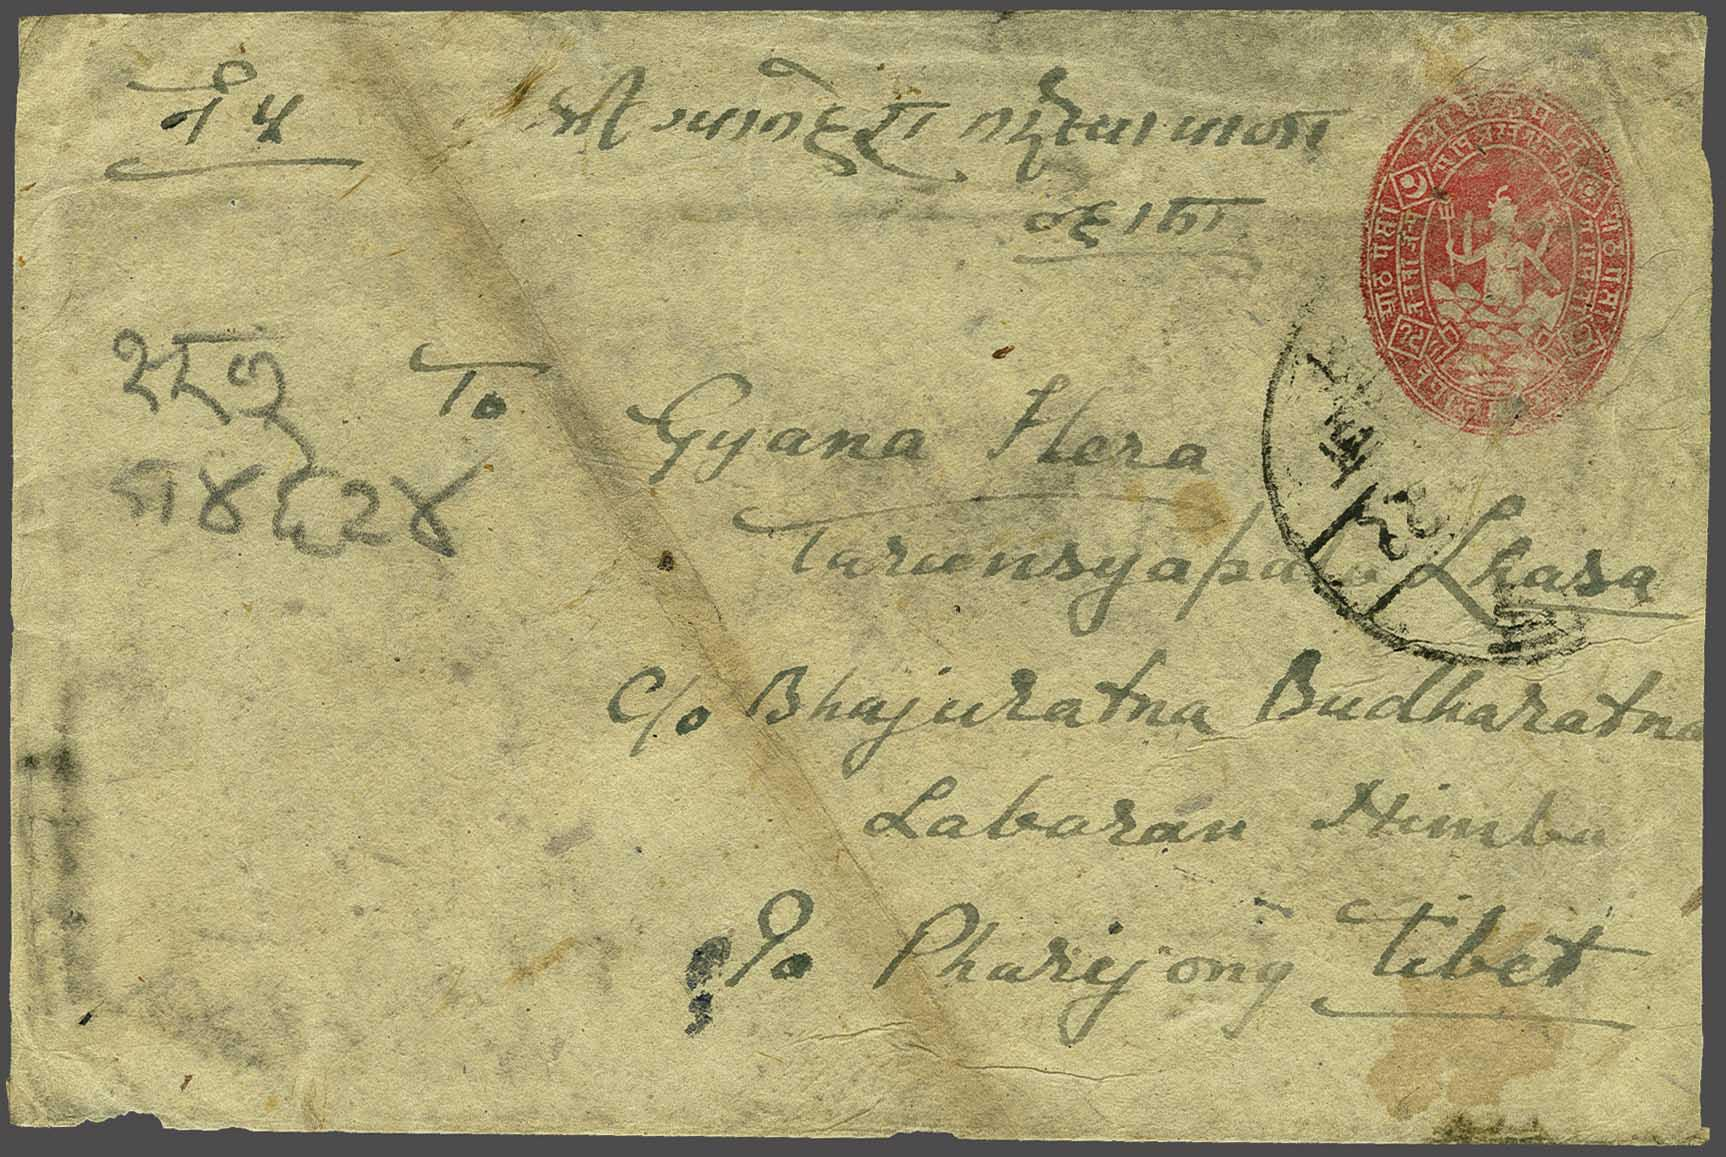 Lot 74 - Great Britain and former colonies Nepal -  Corinphila Veilingen Auction 245-246 Day 1 - Nepal - The Dick van der Wateren Collection, Foreign countries - Single lots, Picture postcards